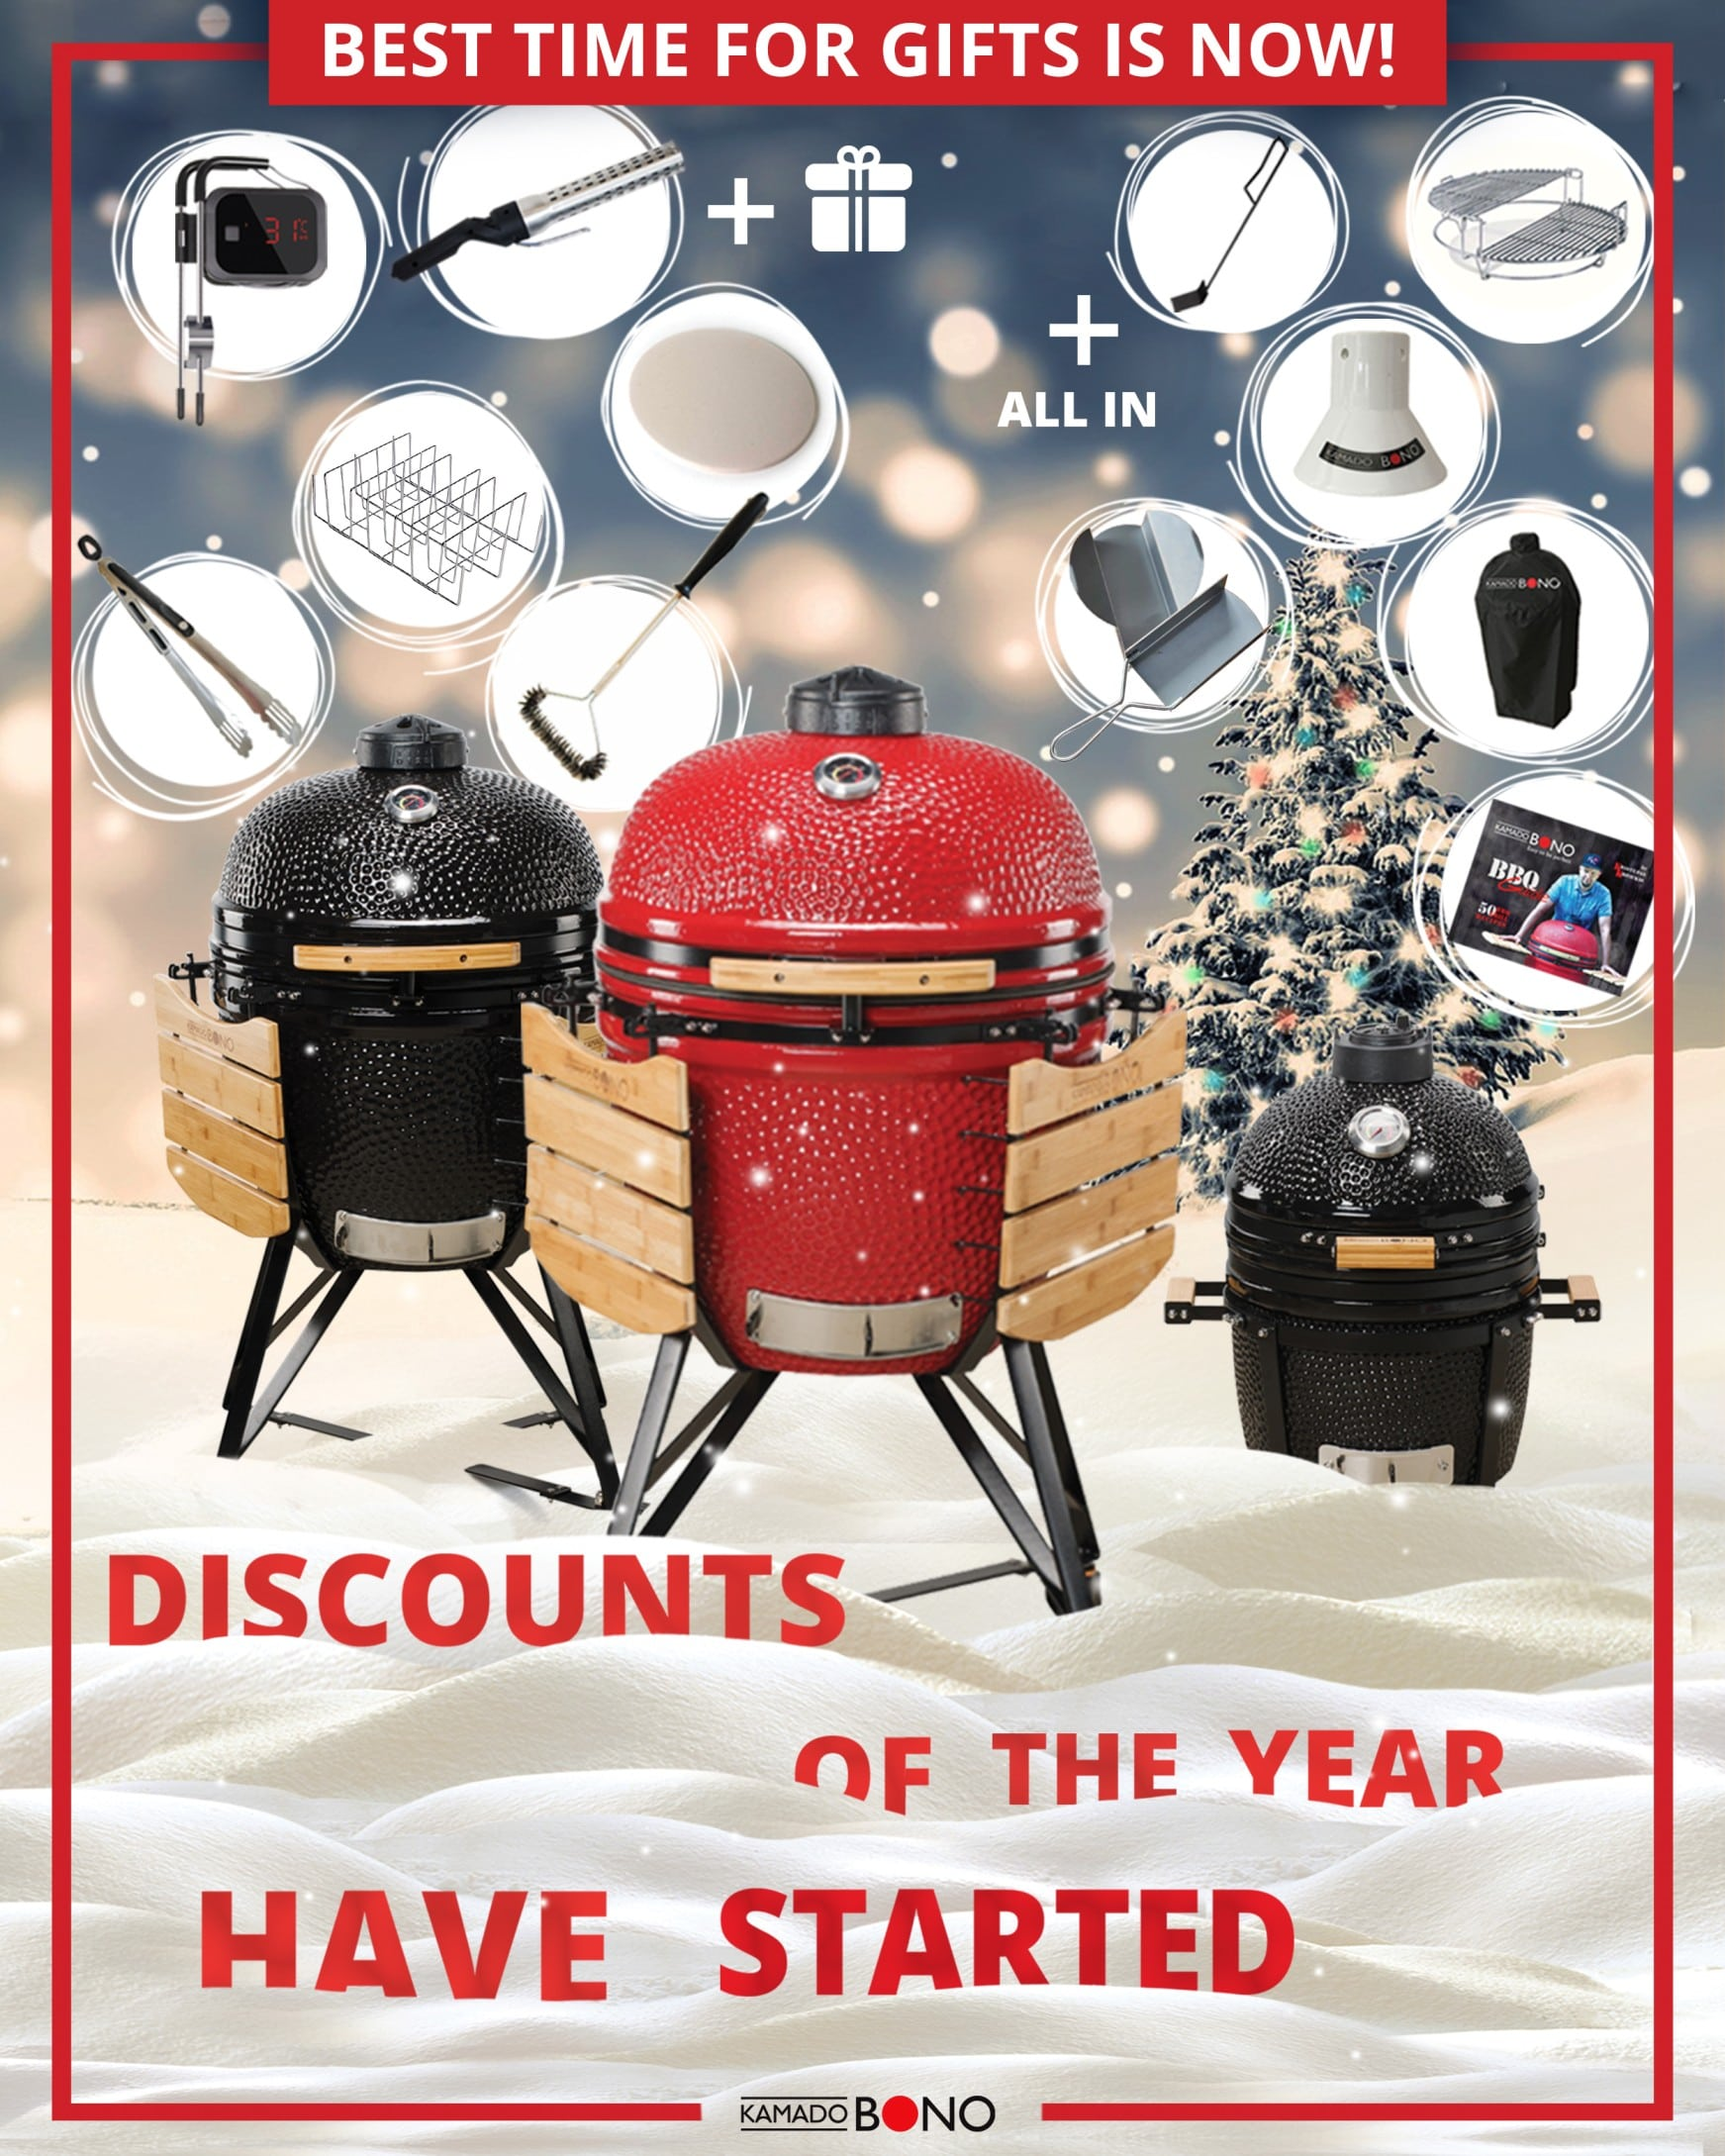 Kamado Kings Christmas Sale Starts Now!